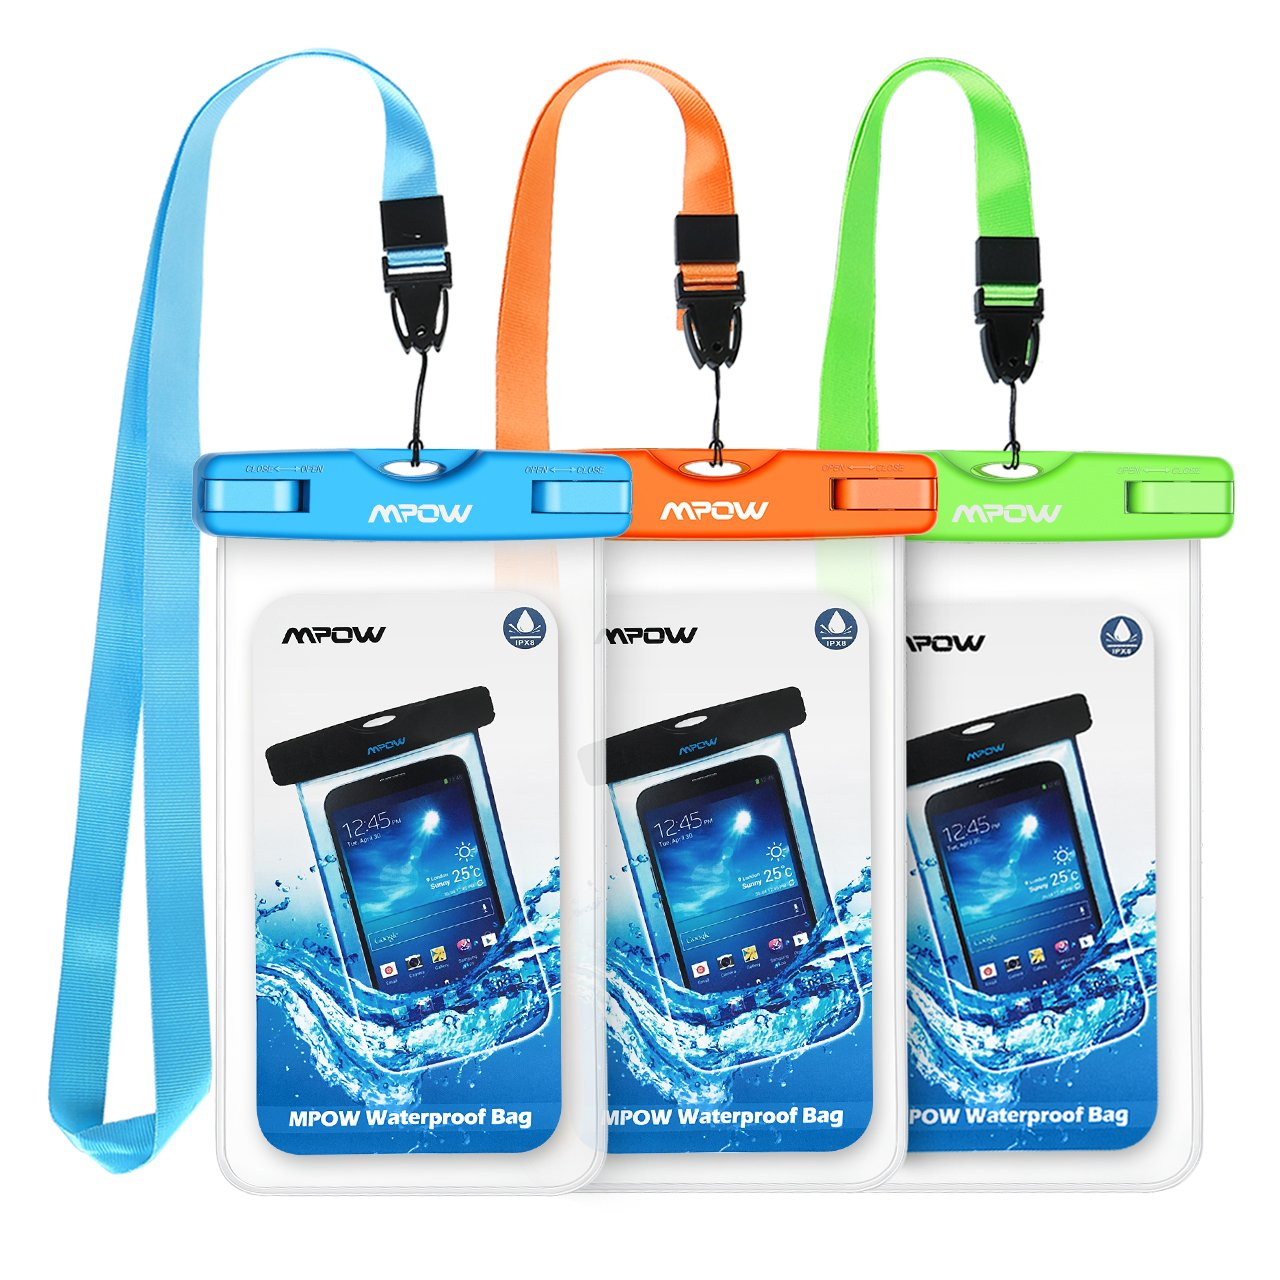 "Mpow 024 Waterproof Case, Universal Waterproof Phone Pouch Underwater IPX8 Dry Bag Compatible iPhone 11/11 Pro Max/Xs Max/XS/XR/X/8P/7P, Galaxy S10/S9, Google Pixel/HTC up to 6.5"" (Blue Orange Green)"